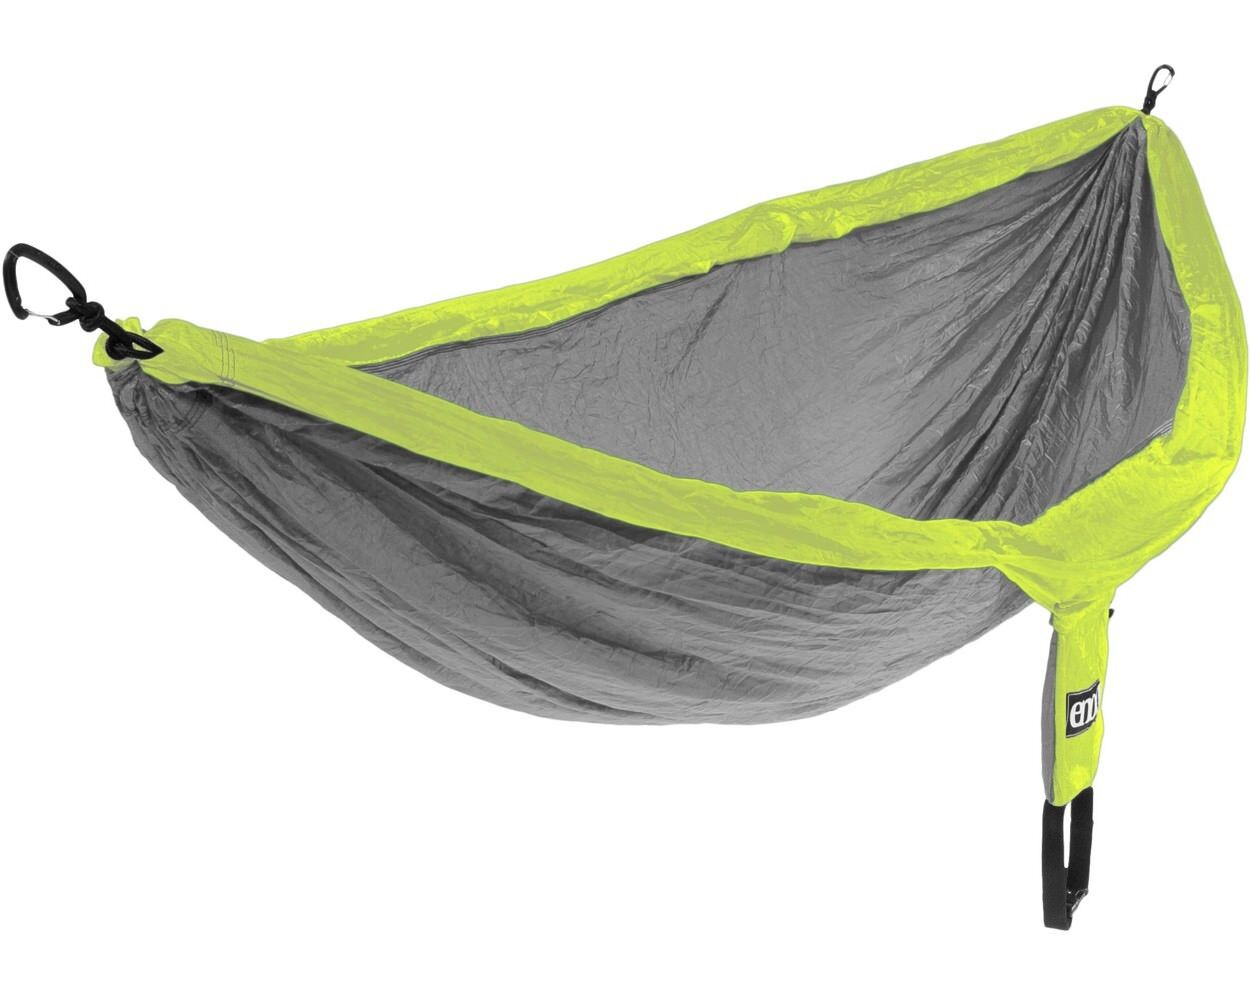 Eno Nest Eagle Nest Eno Outfitters Doublenest parachute hammock Gris/Fluo f73262